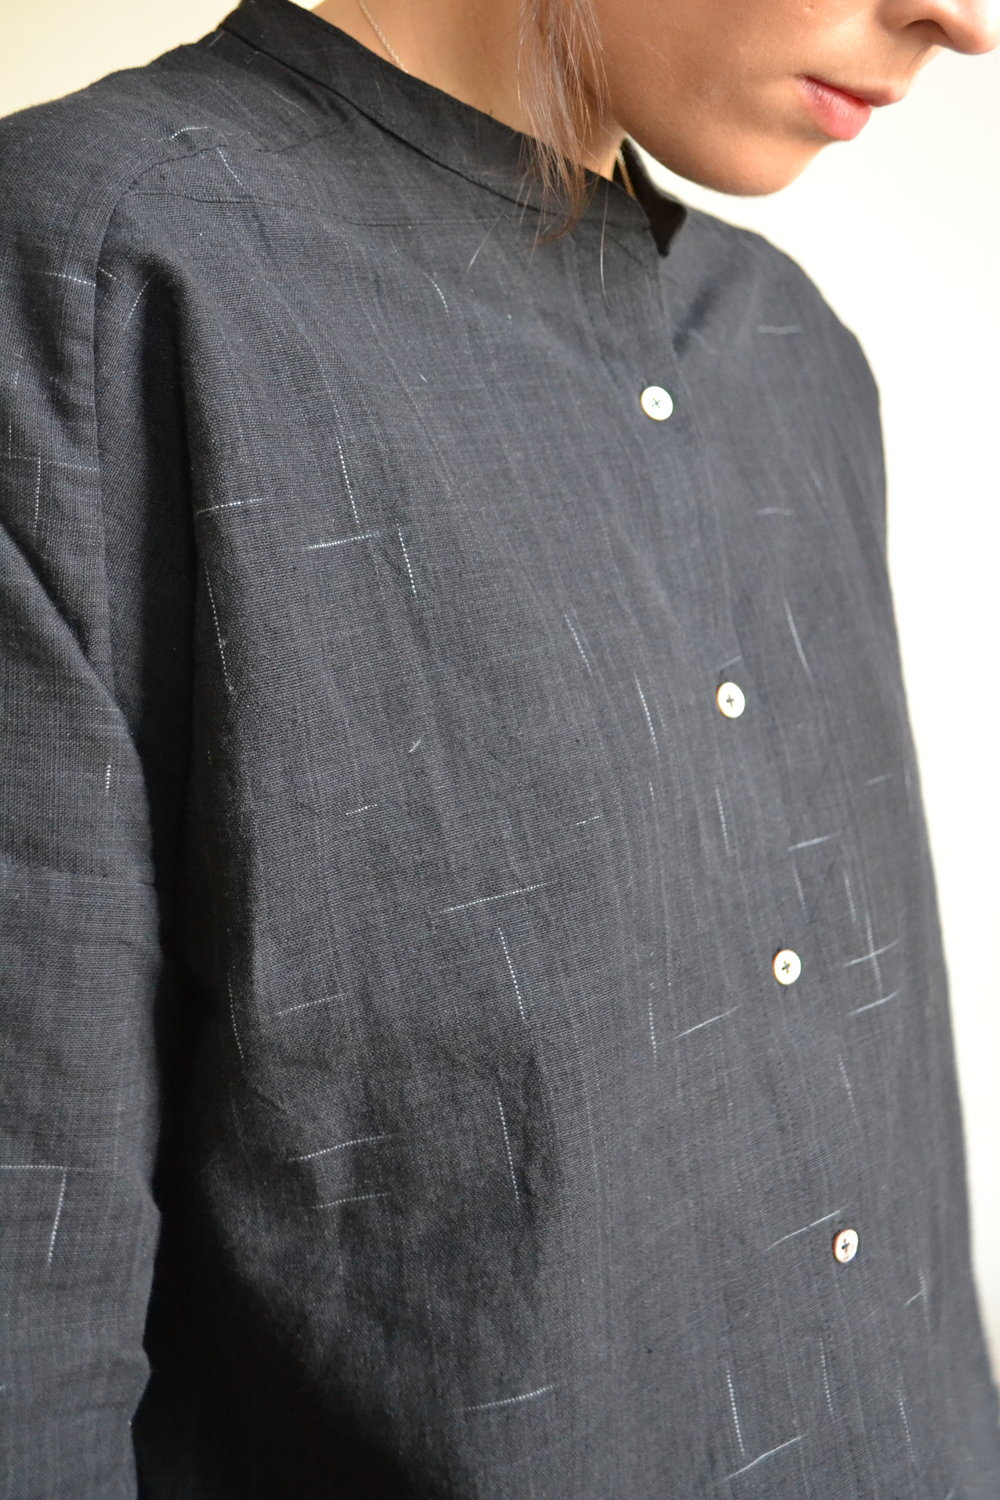 Senja the Weekend Shirt | $79